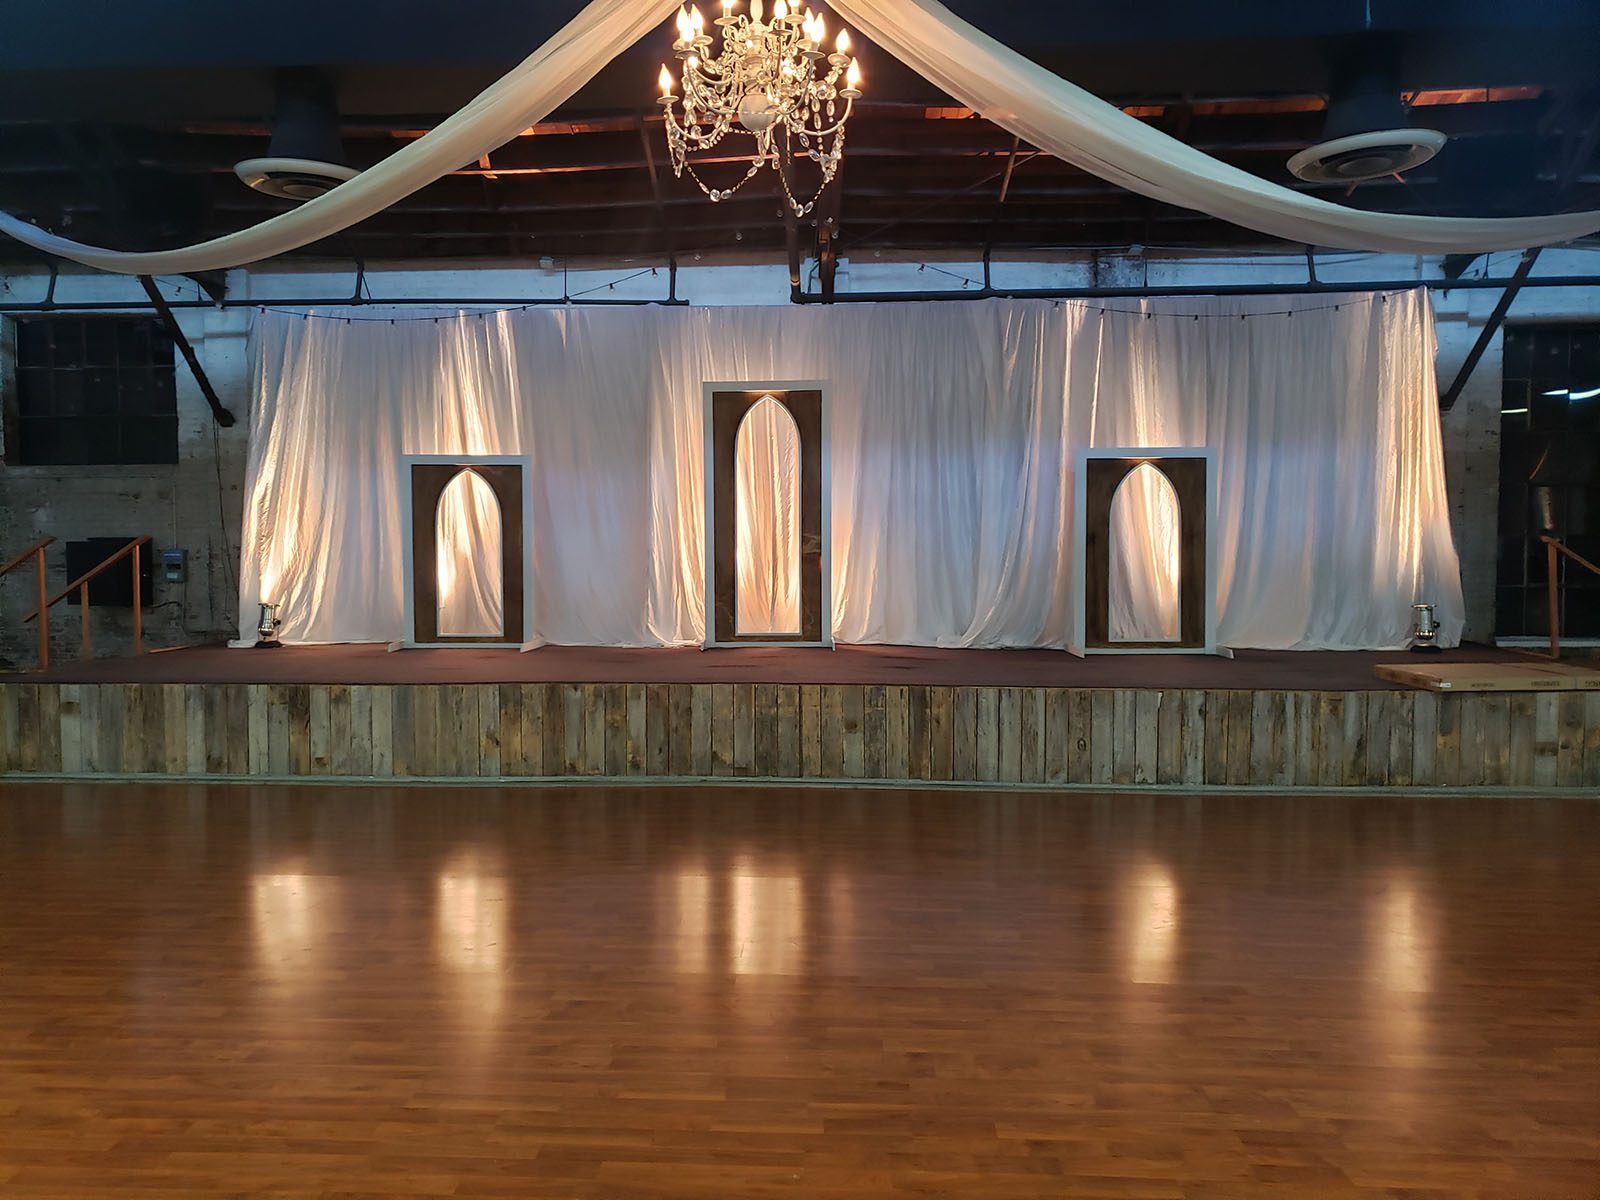 lighting and decor nashville tn_FADDs Events_Nashville TN